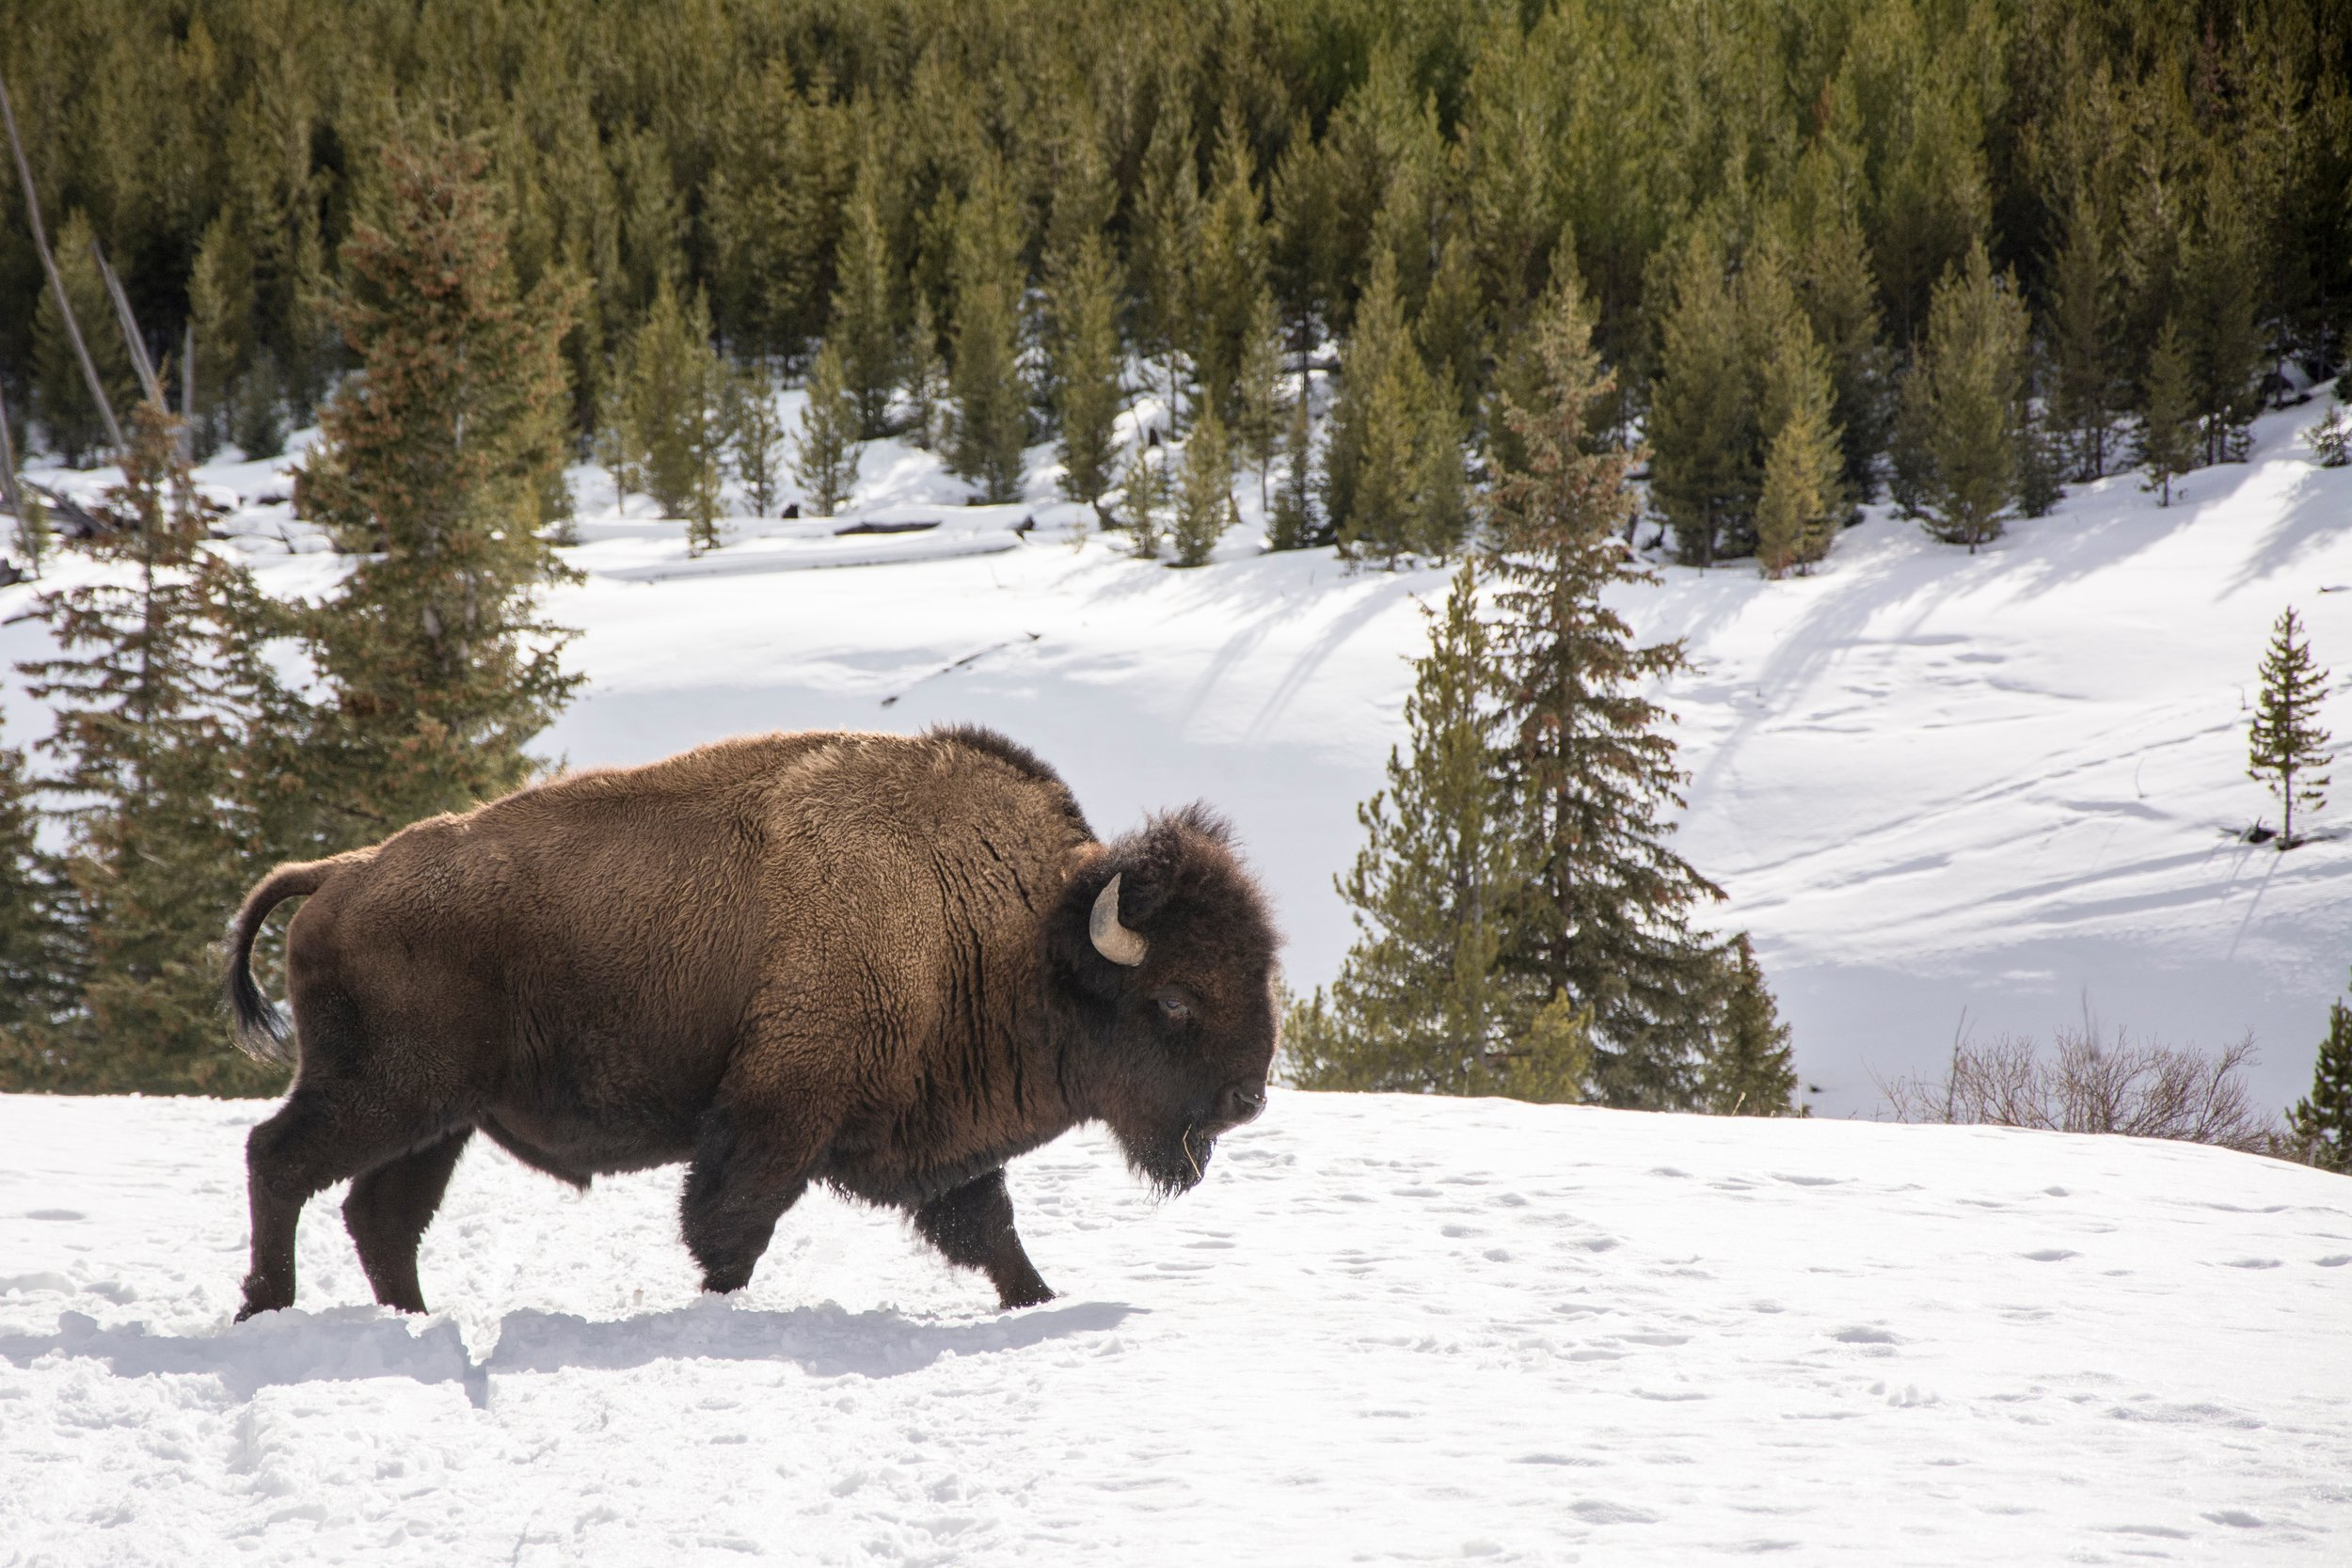 Mammals - Bison tours led by a wildlife biologist